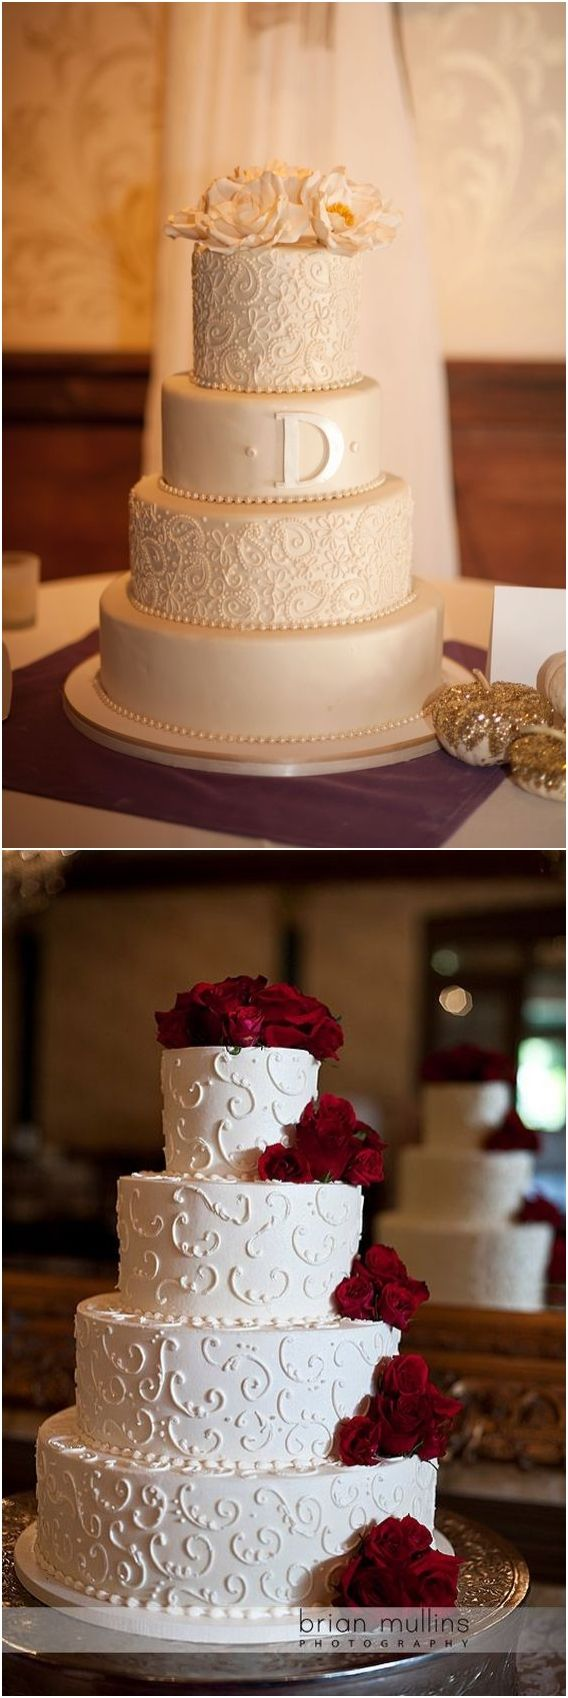 Classic Elegant Wedding Cakes #weddings #weddingcakes  / http://www.deerpearlflowers.com/amazing-wedding-cake-ideas/2/